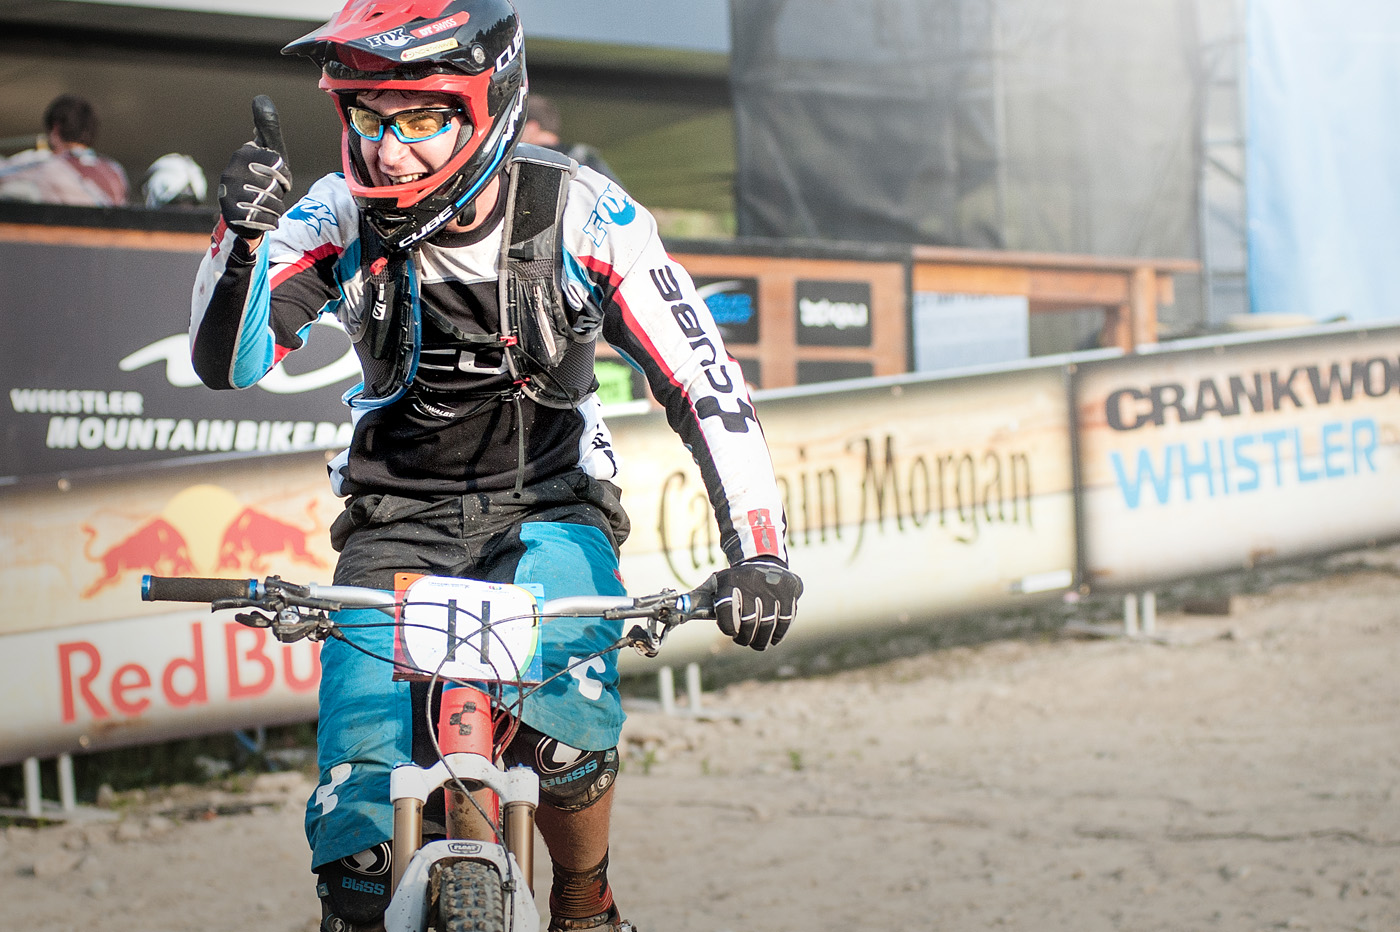 Nico bei der Enduro World Series Whistler